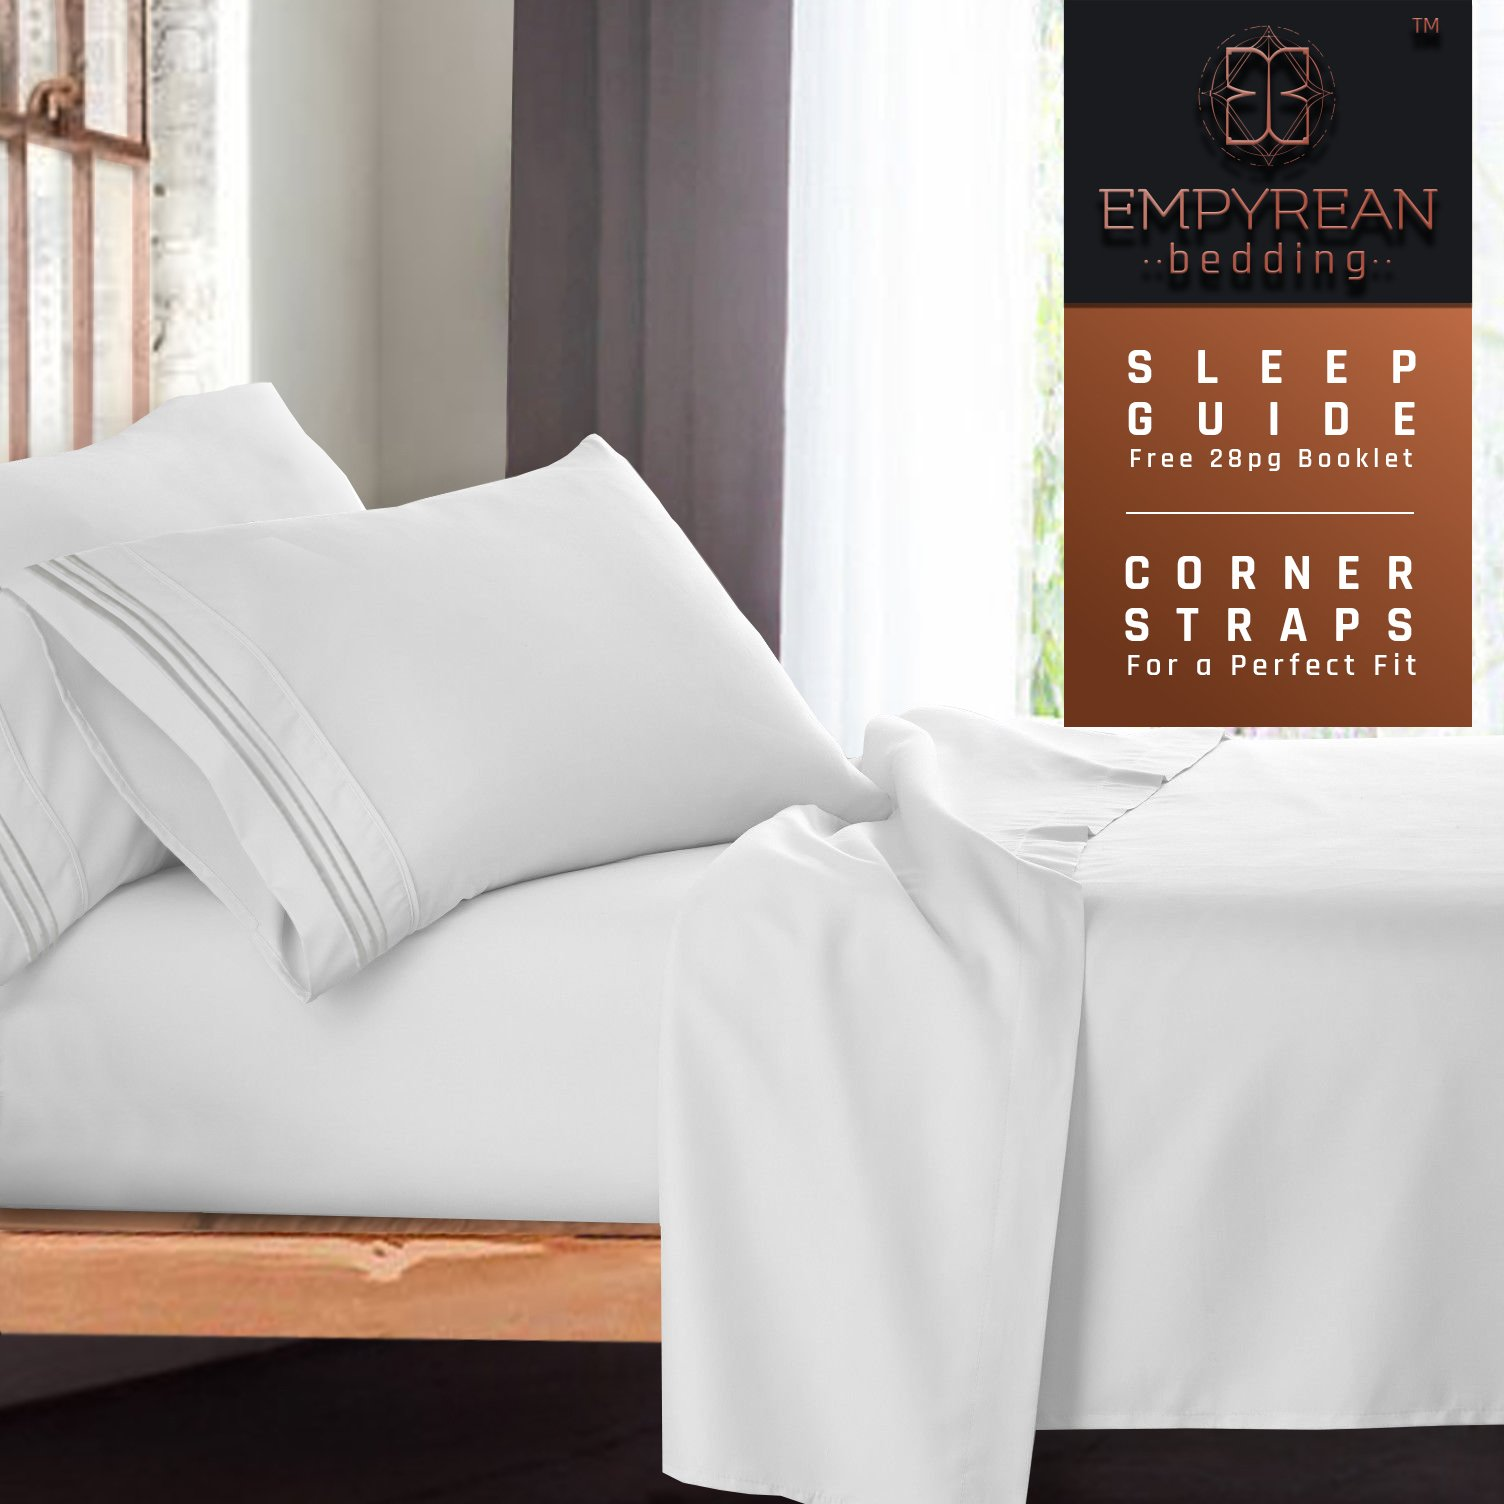 Premium Full (Double) Size Sheets Set - White Hotel Luxury 4-Piece Bed Set, Extra Deep Pocket Special Super Fit Fitted Sheet, Best Quality Microfiber Linen Soft & Durable Design + Better Sleep Guide by Empyrean Bedding (Image #9)